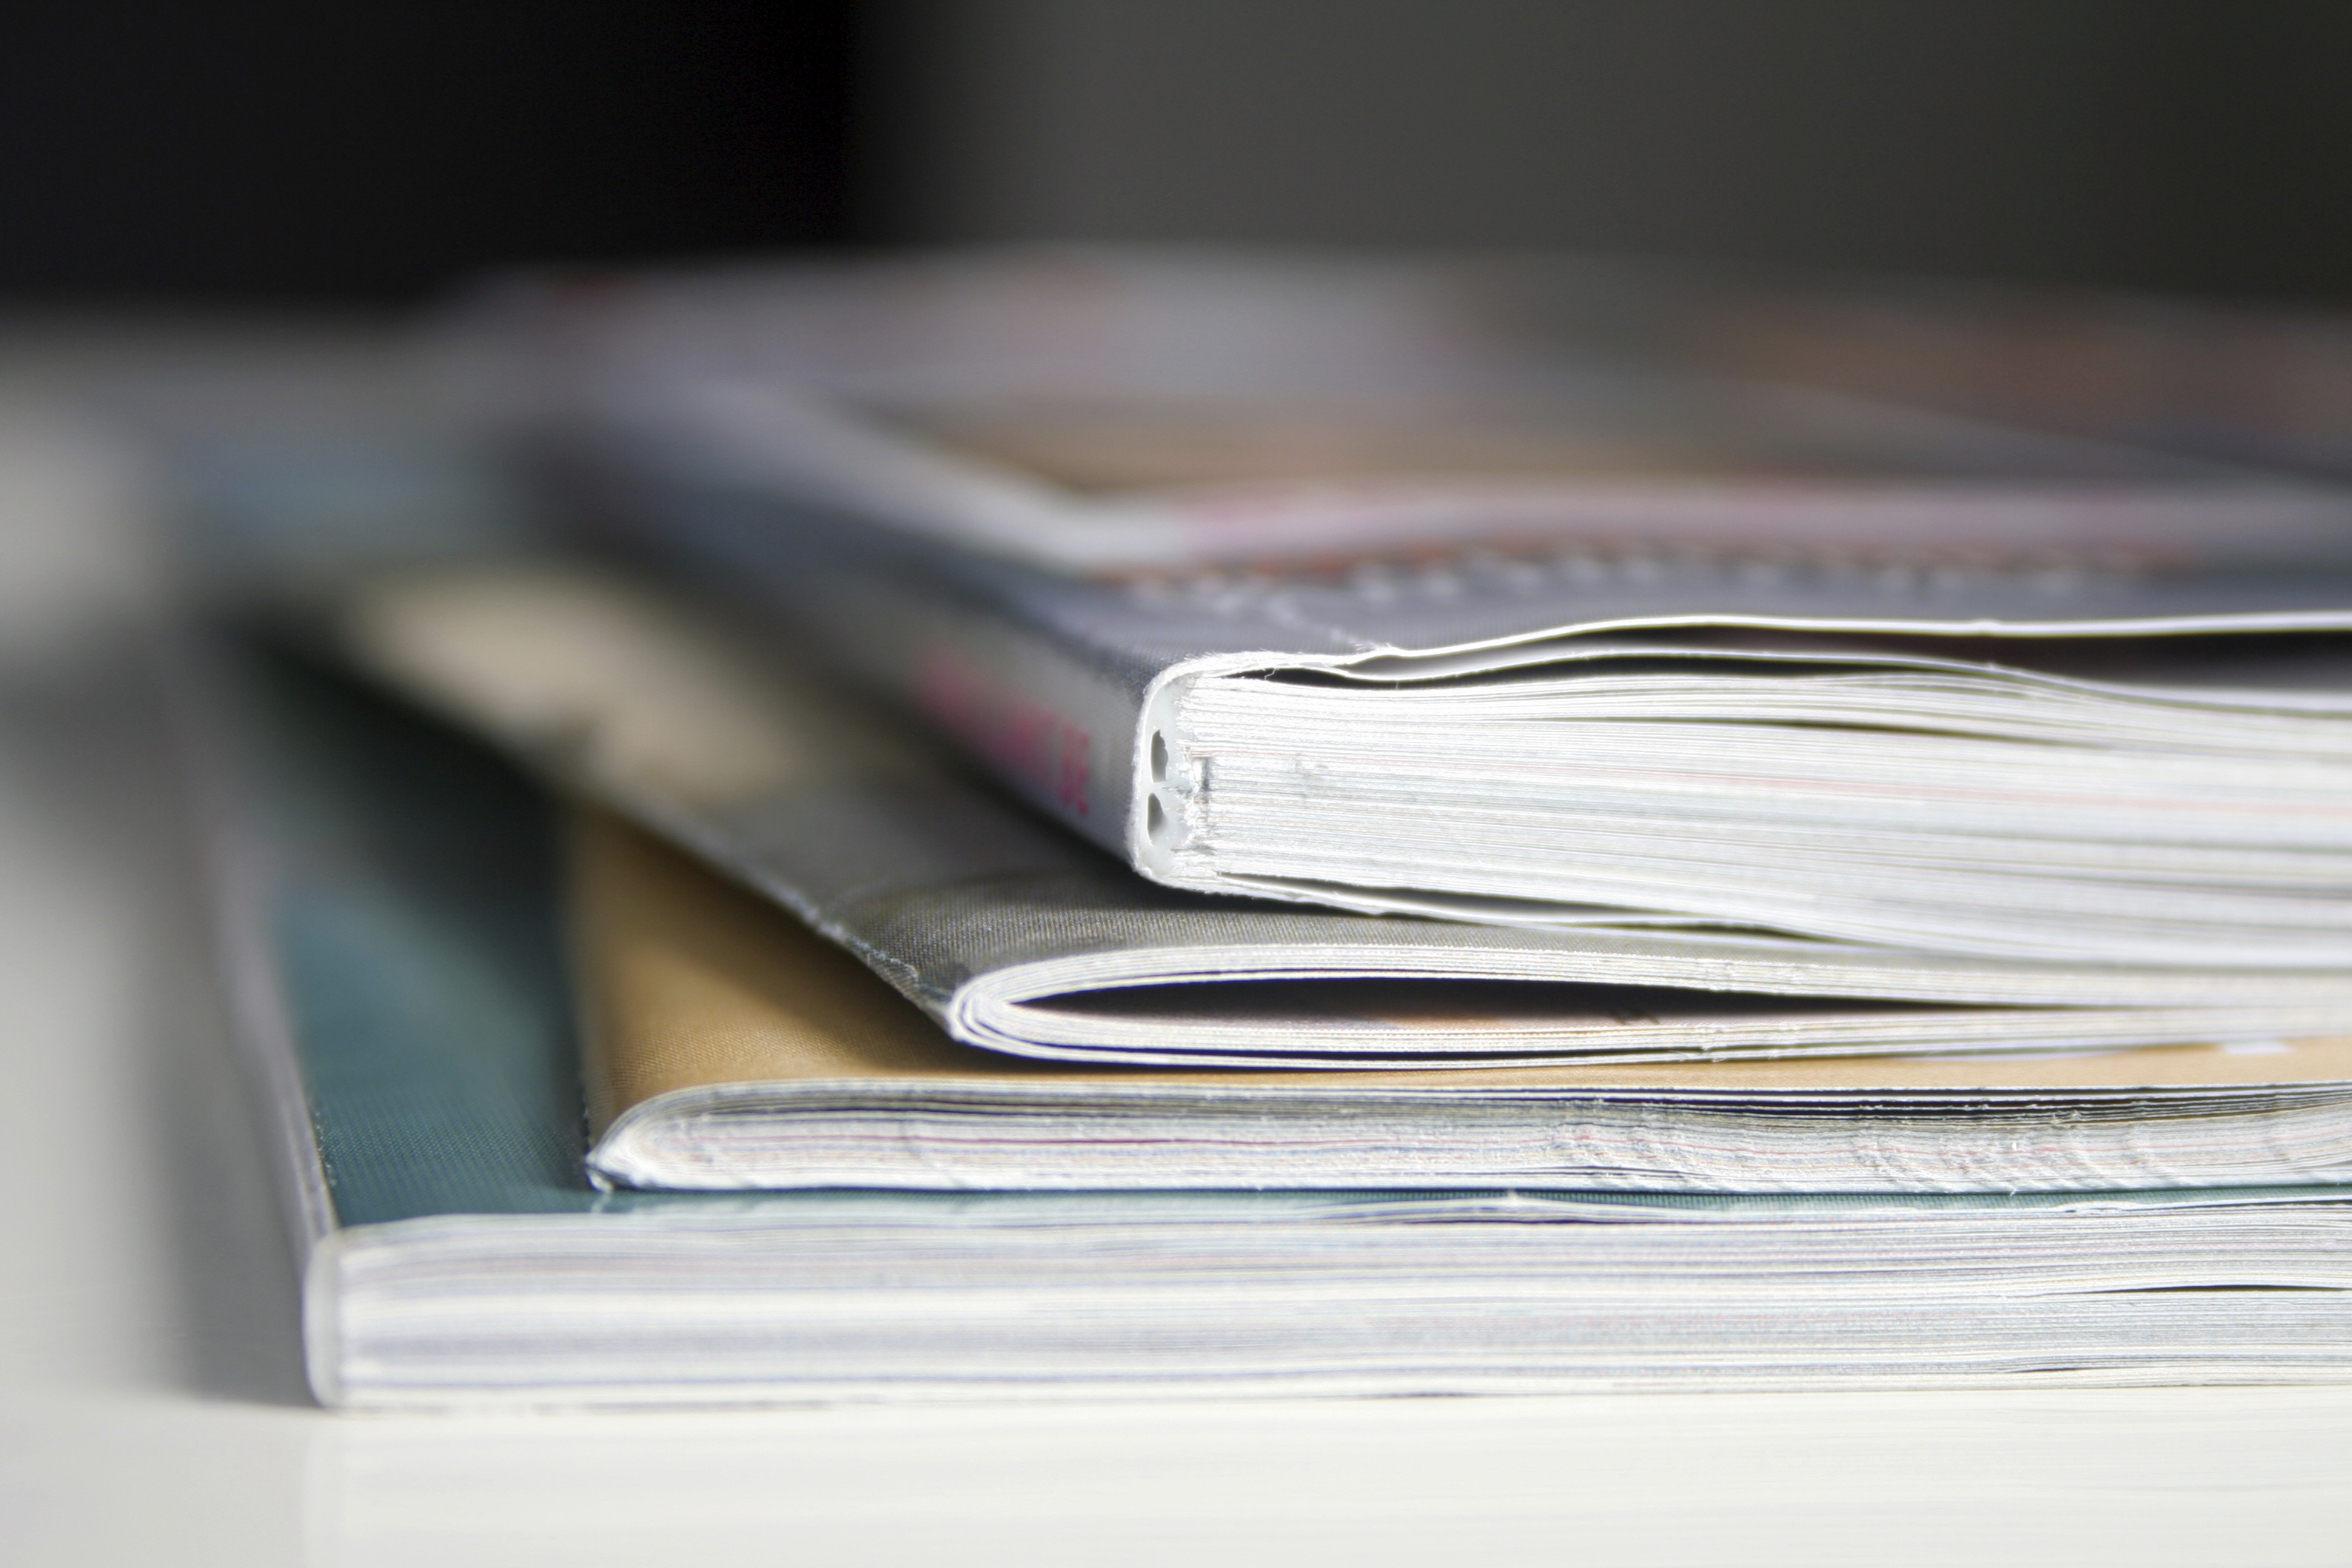 Duplicate publications and simultaneous submissions